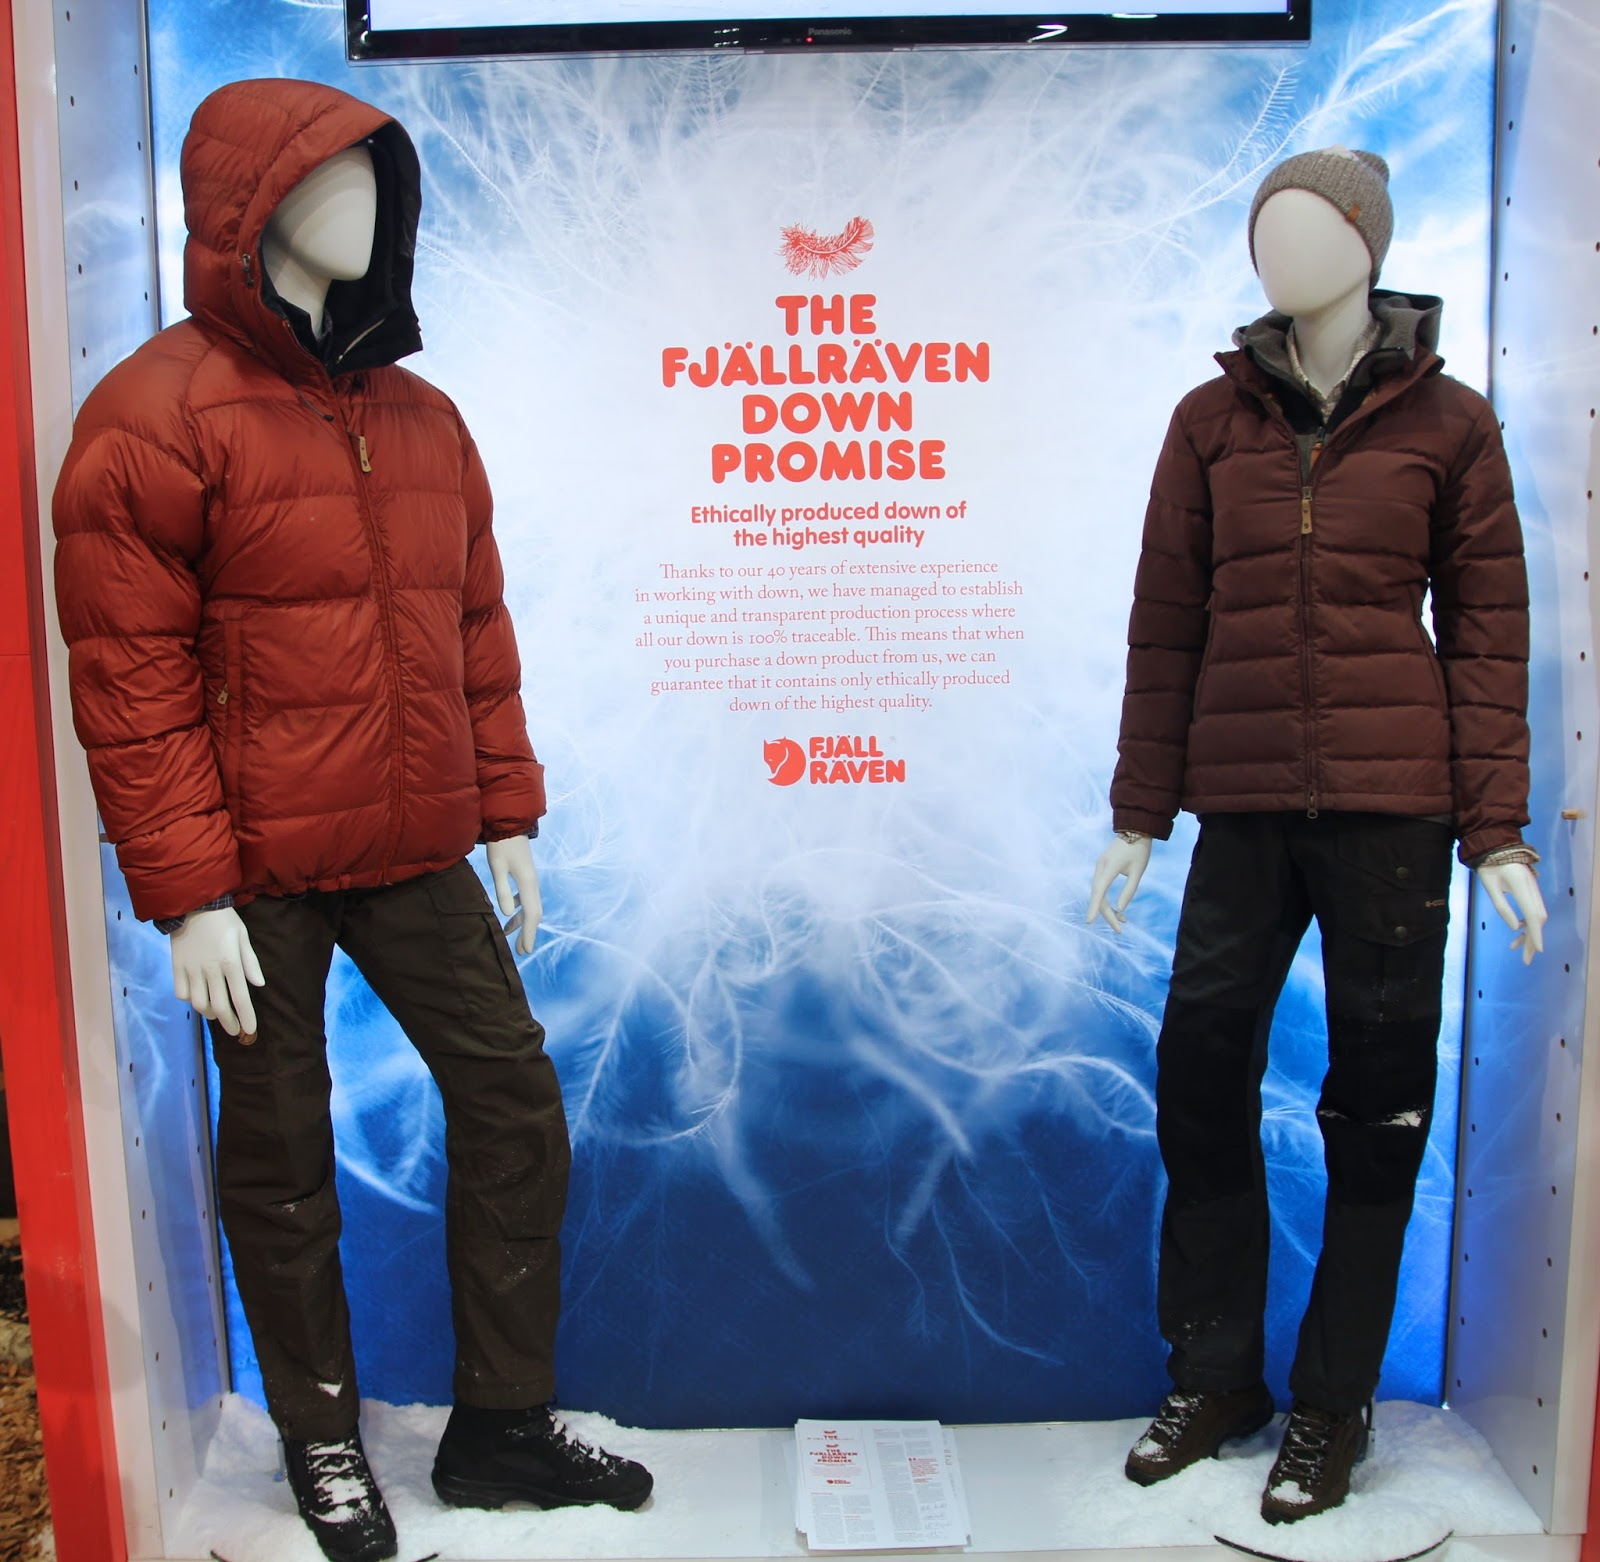 bb1258a2eb The Fjallraven Promise -ethically produced down of the highest quality